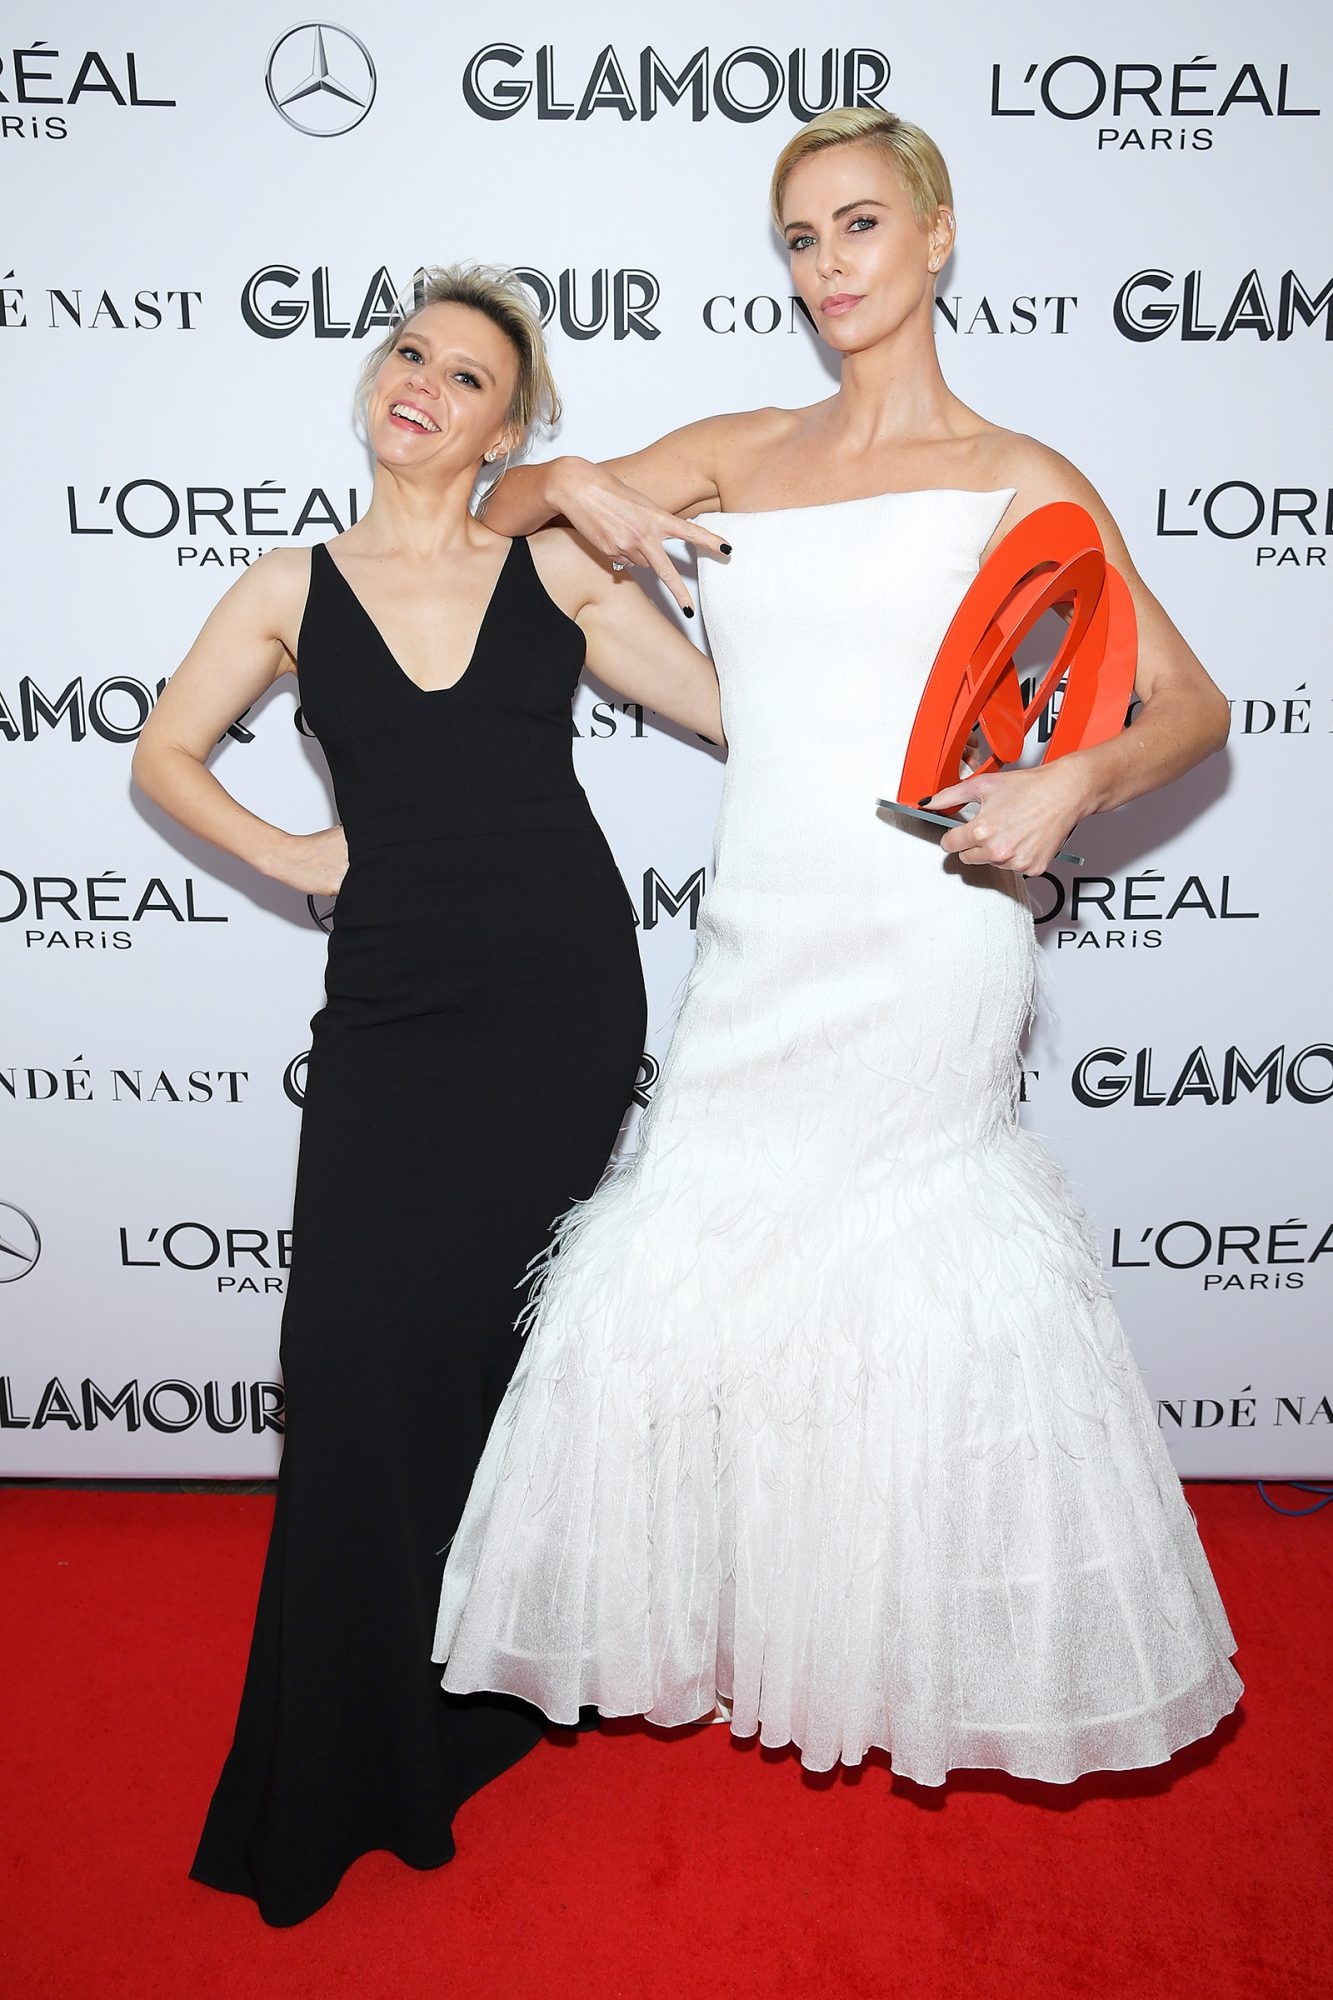 Kate McKinnon and Charlize Theron attends the 2019 Glamour Women Of The Year Awards at Alice Tully Hall on November 11, 2019 in New York City